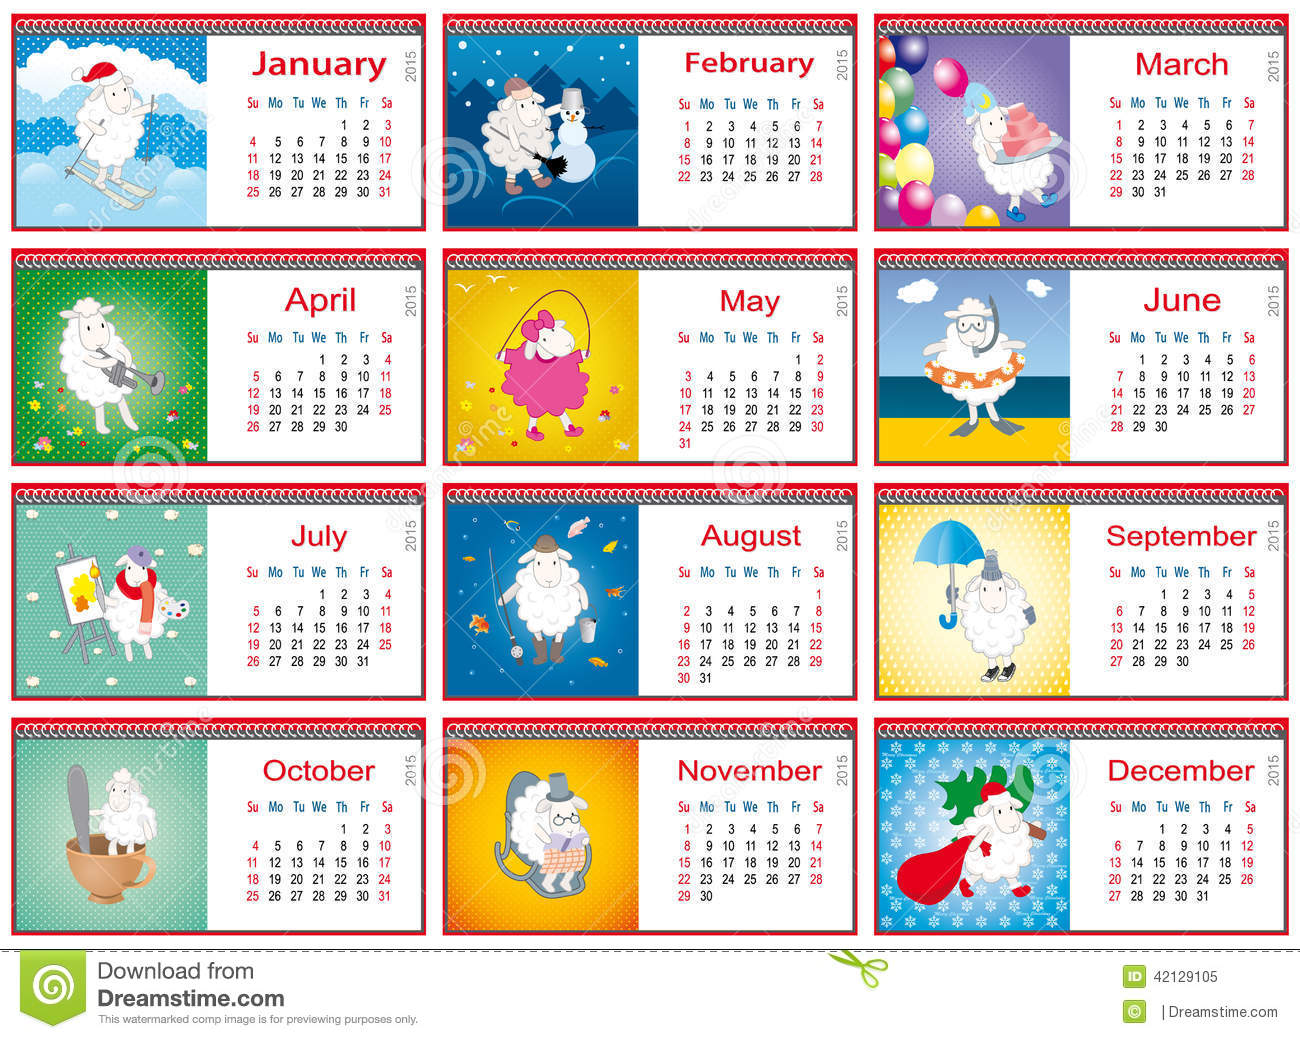 Meses En Portugues Calendars For Each Month In 2015 With Active Sheep Stock